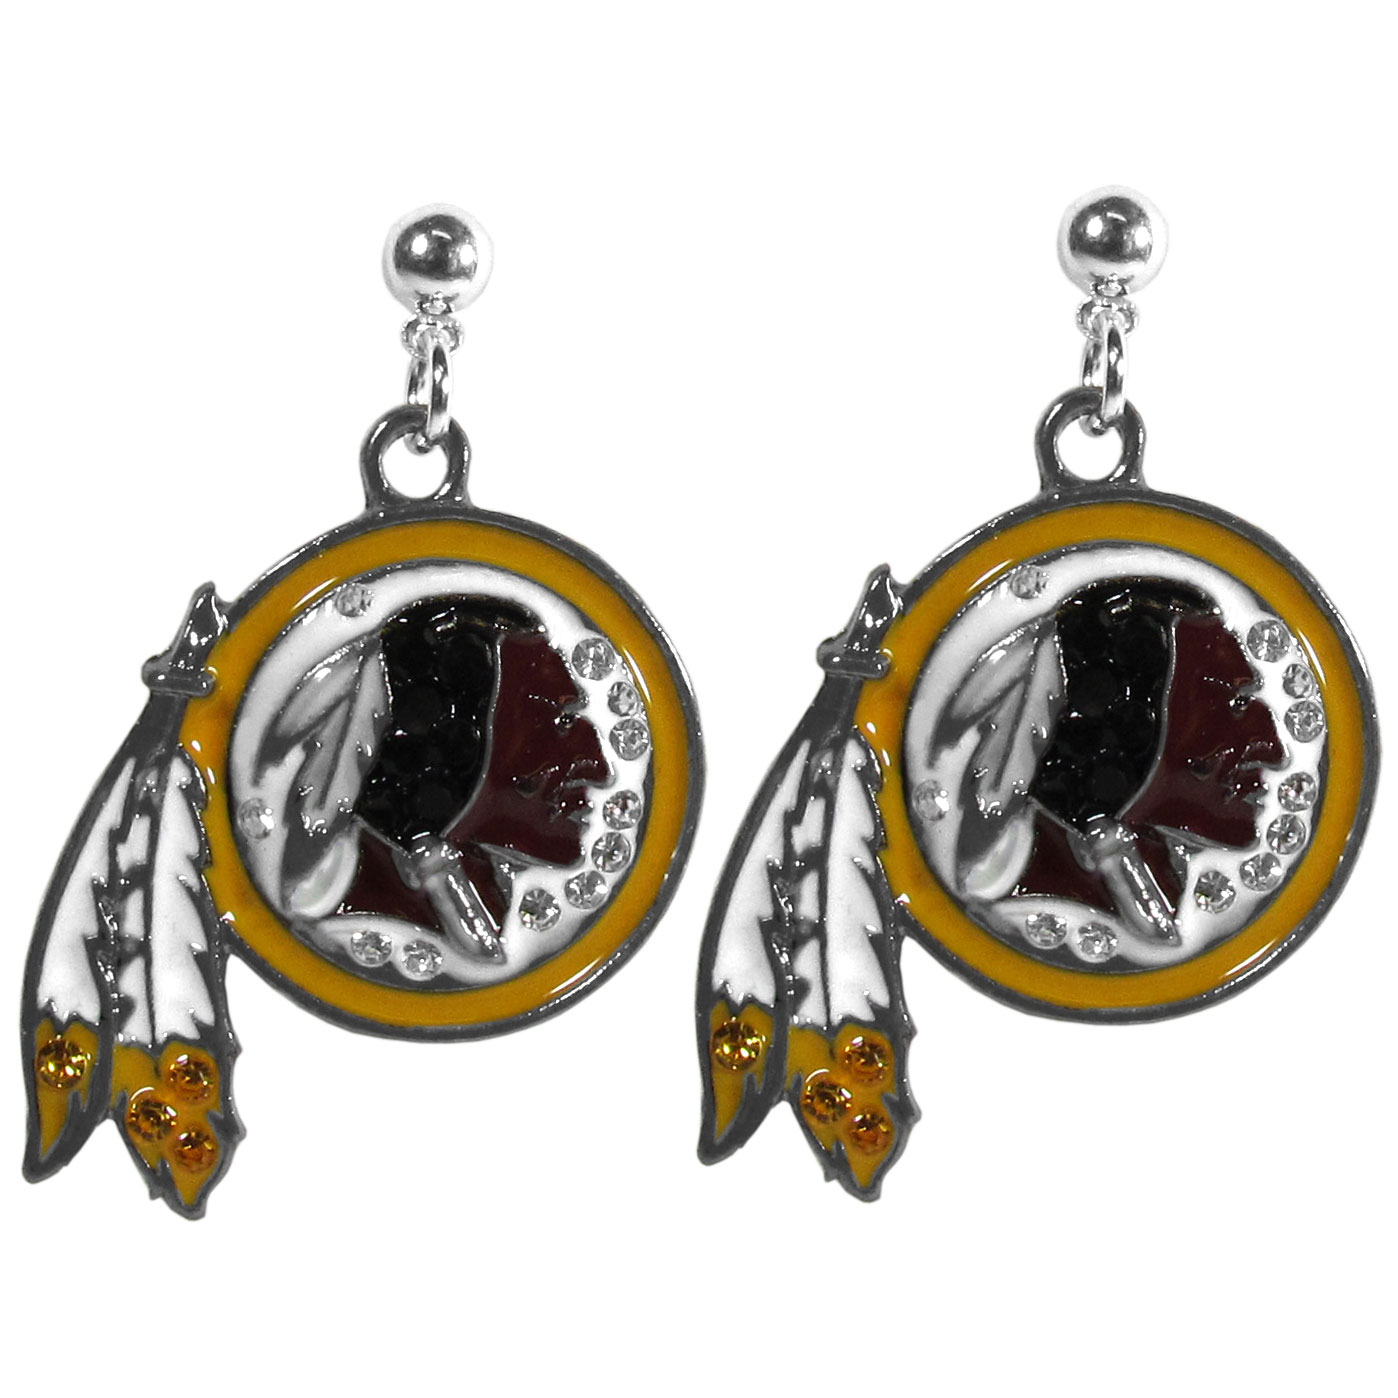 Washington Redskins Crystal Stud Earrings - These sporty stud earrings have beautiful crystal enlaided Washington Redskins charms that hang from the stud posts so that you have the best of both the dangle earring style with the comfort of the secure stud posts. The trendy charms are silver plated with colorful detail and are absolutely covered in team colored charms. The classy earrings feature hypo-allergenic posts.